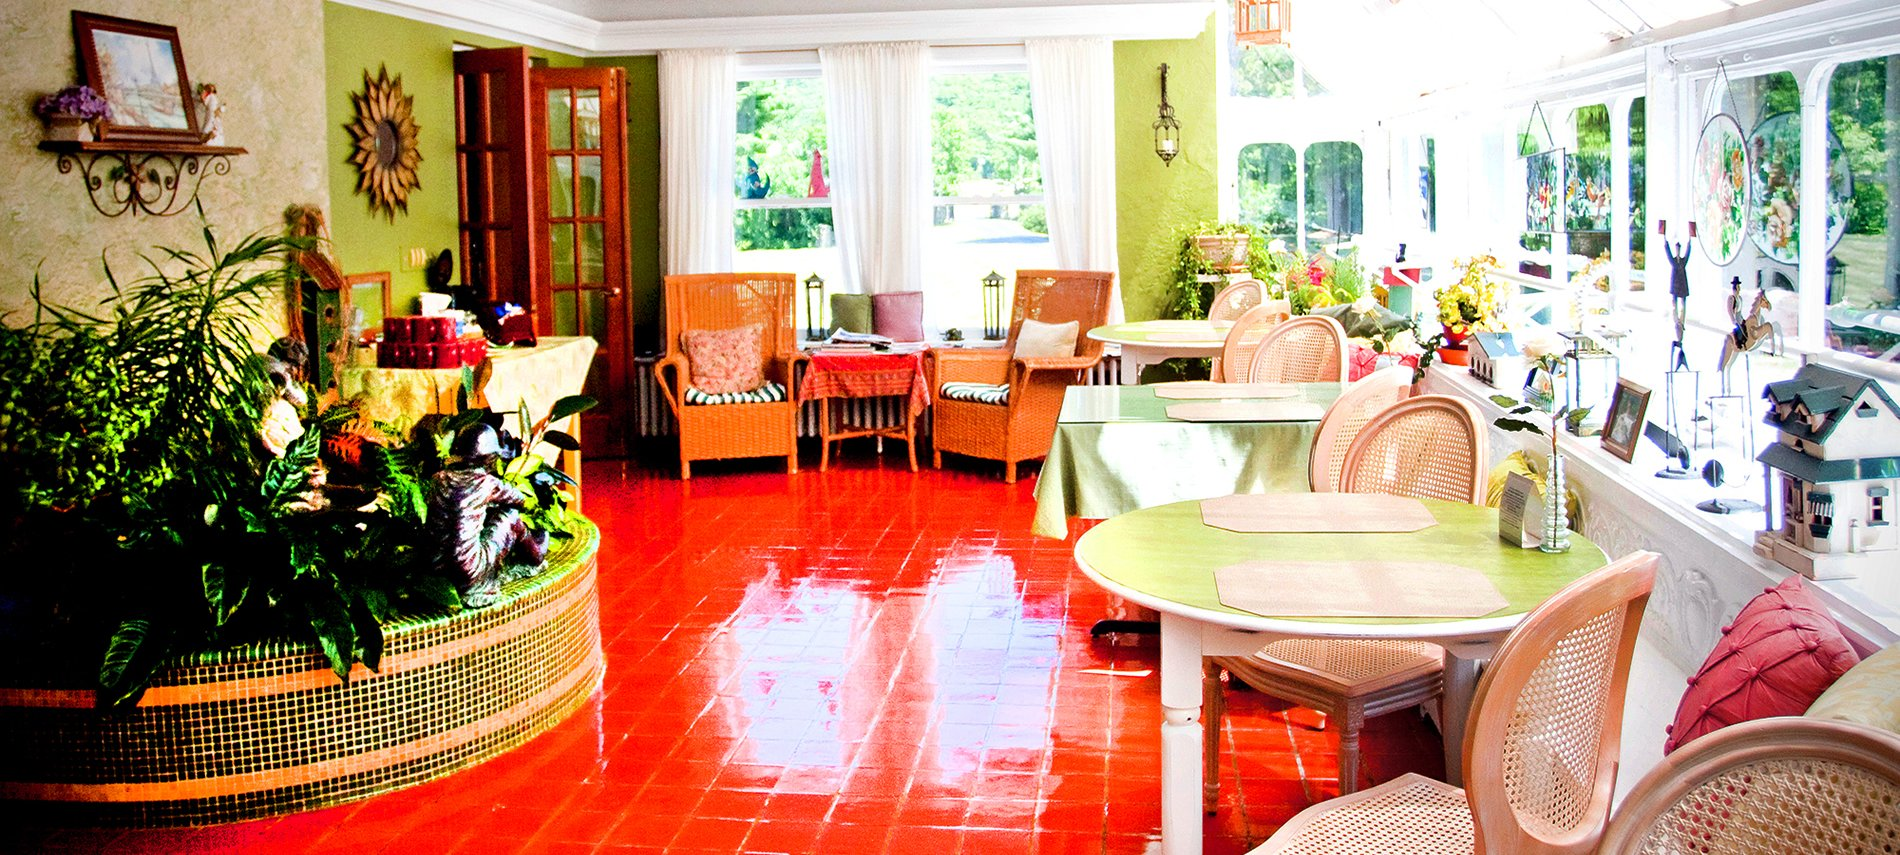 A brightly lit sunroom with red slate floor and two green tables to the right